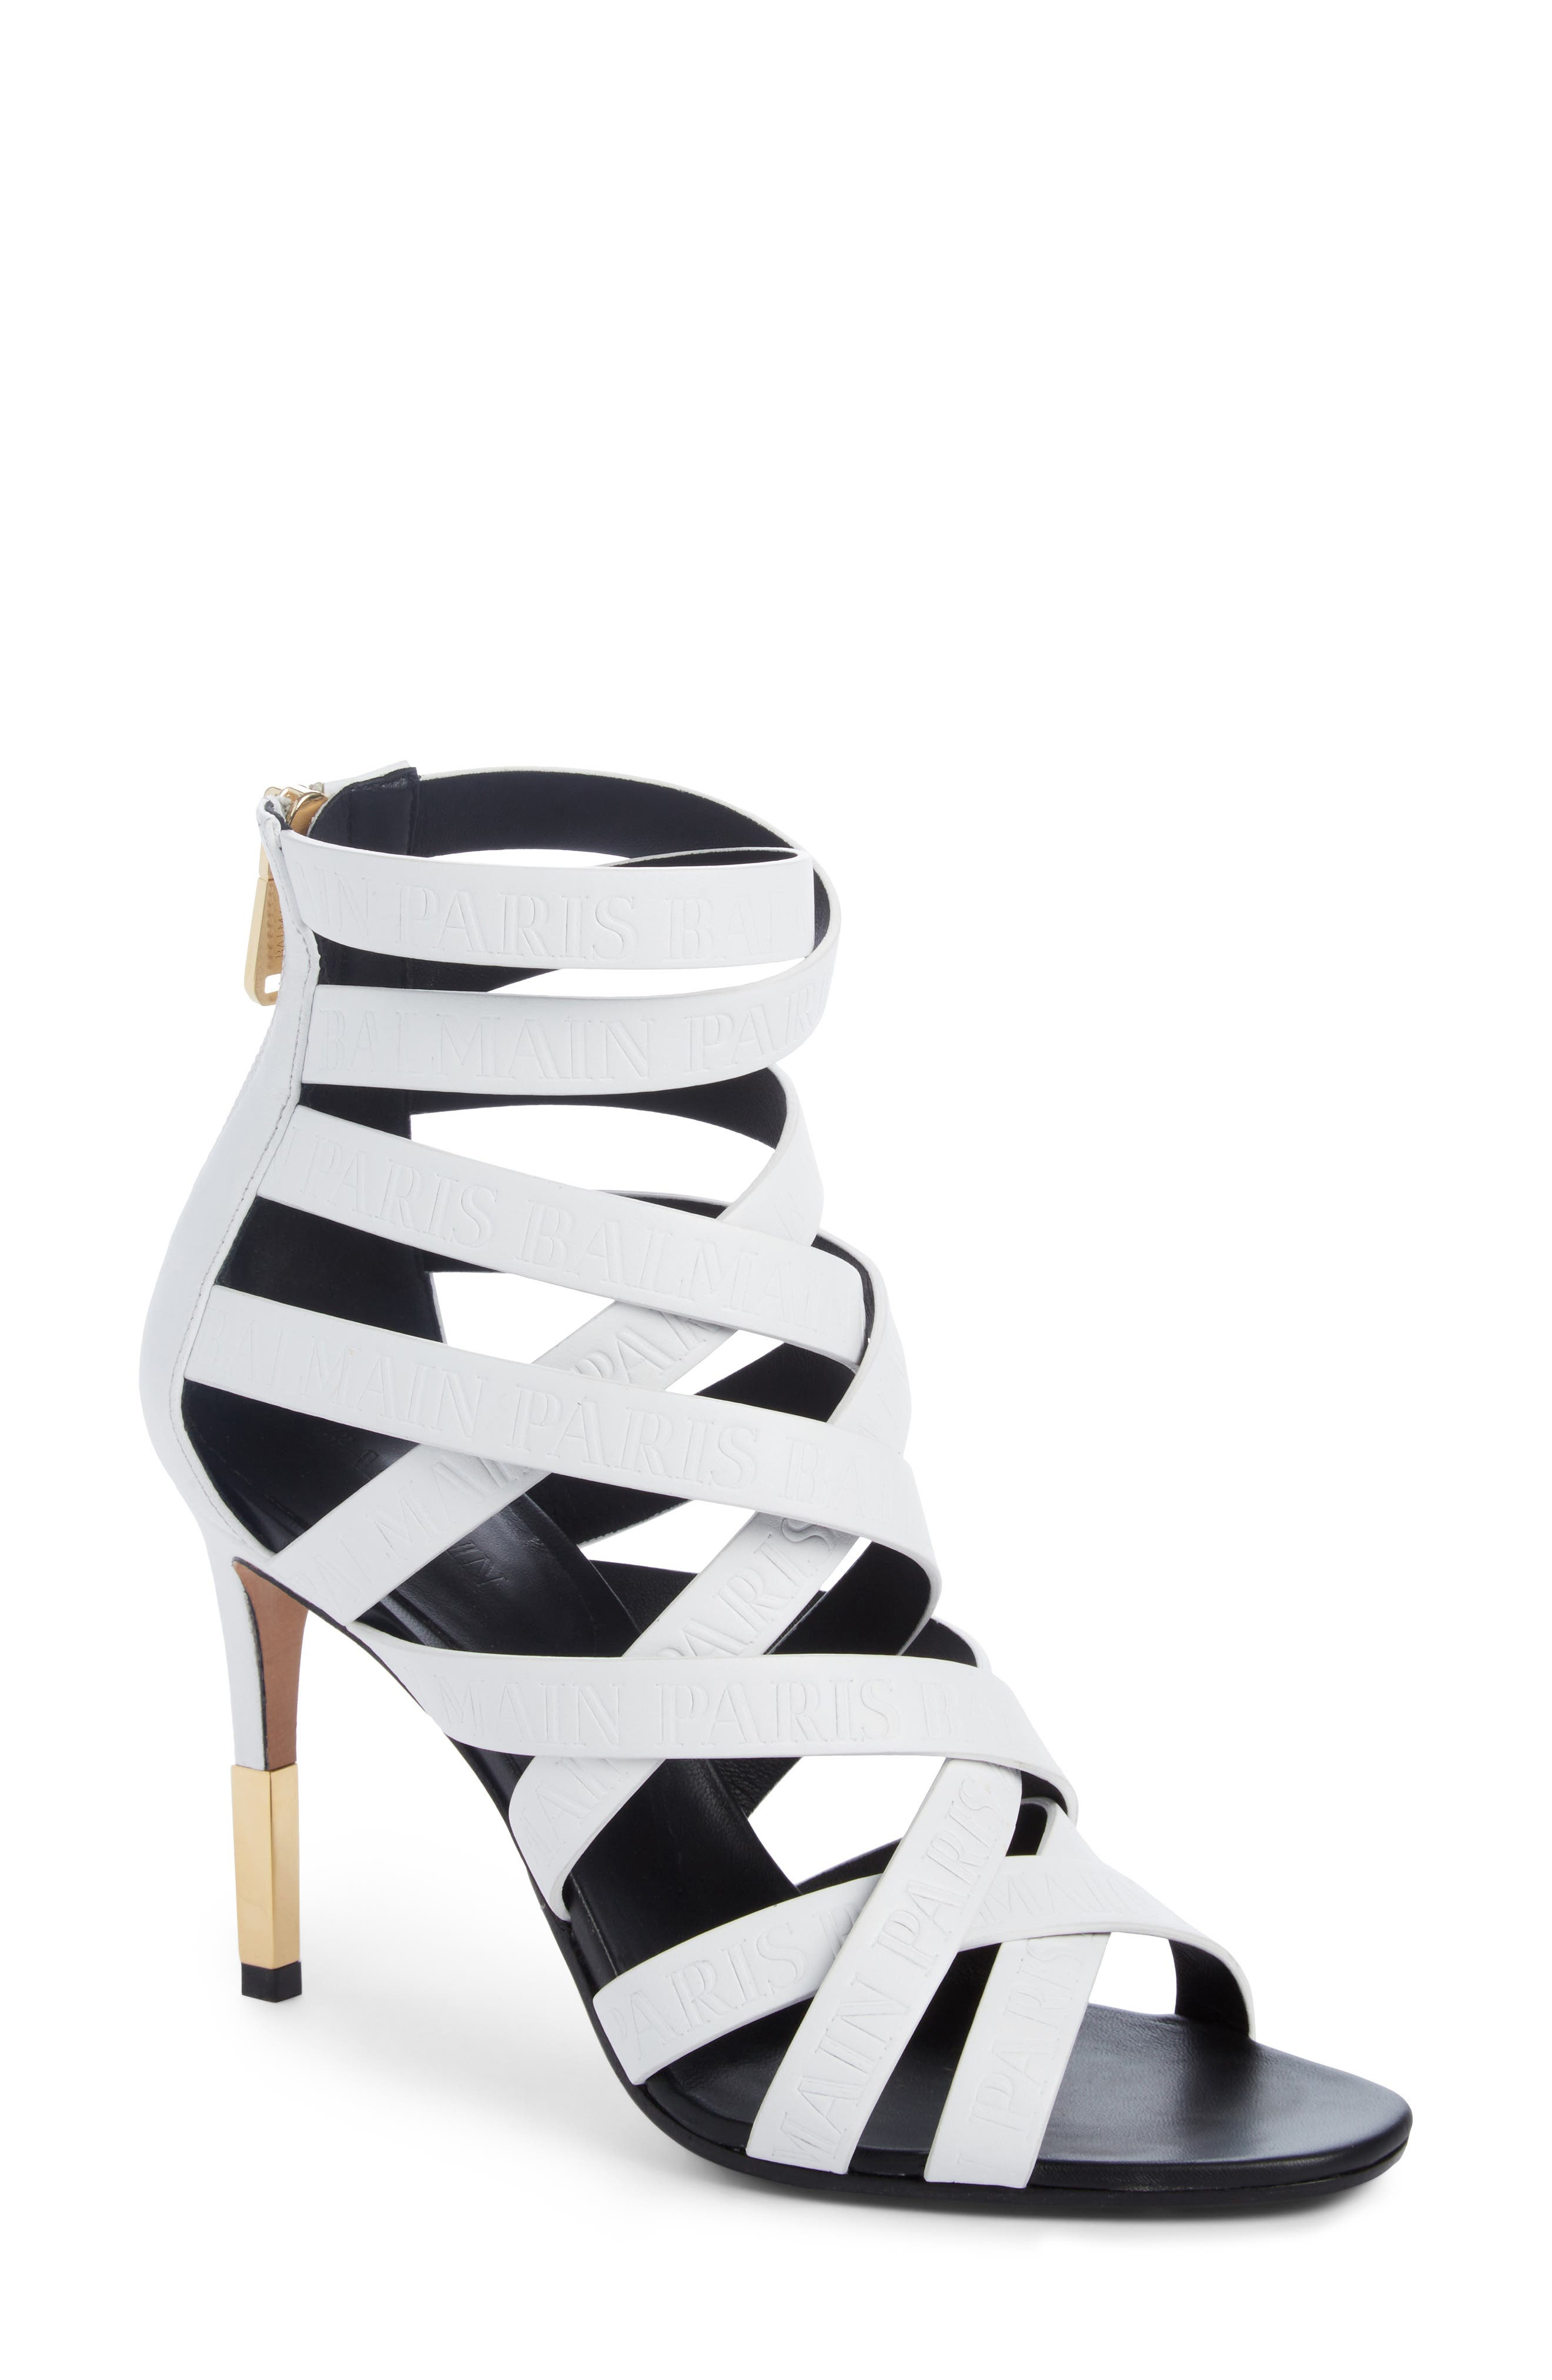 Caged Sandal,                         Main,                         color, White